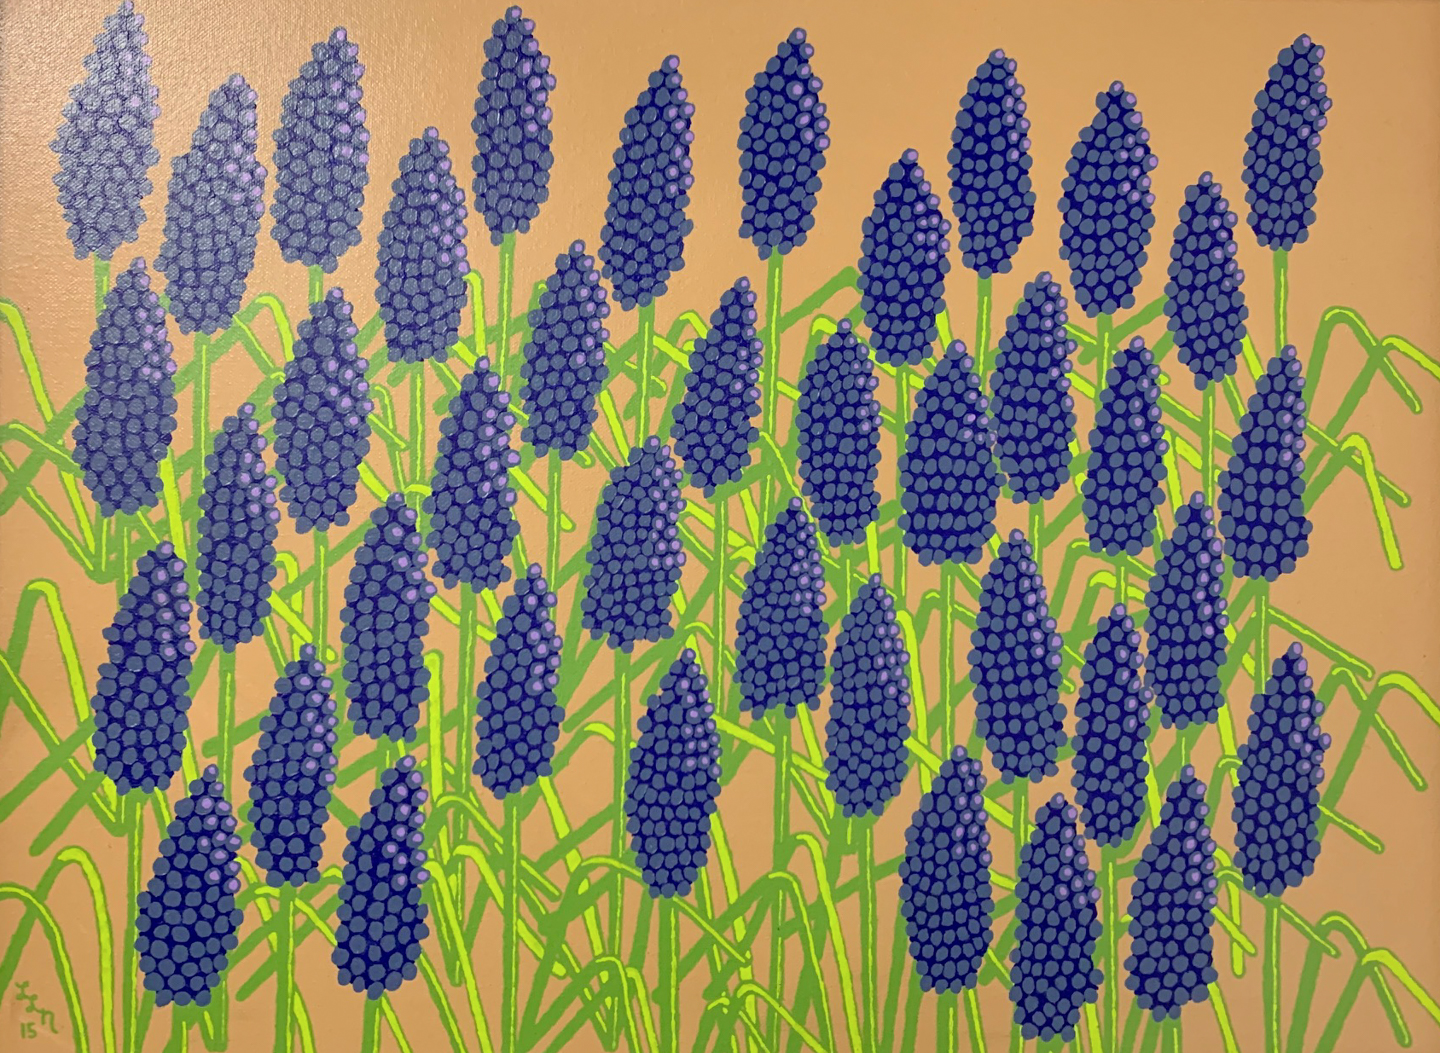 "<p align=""left""><strong><em>Grape Hyacinth</em></strong></br>18 x 24""</br>Acrylic</br><strong>SOLD</strong></br>"